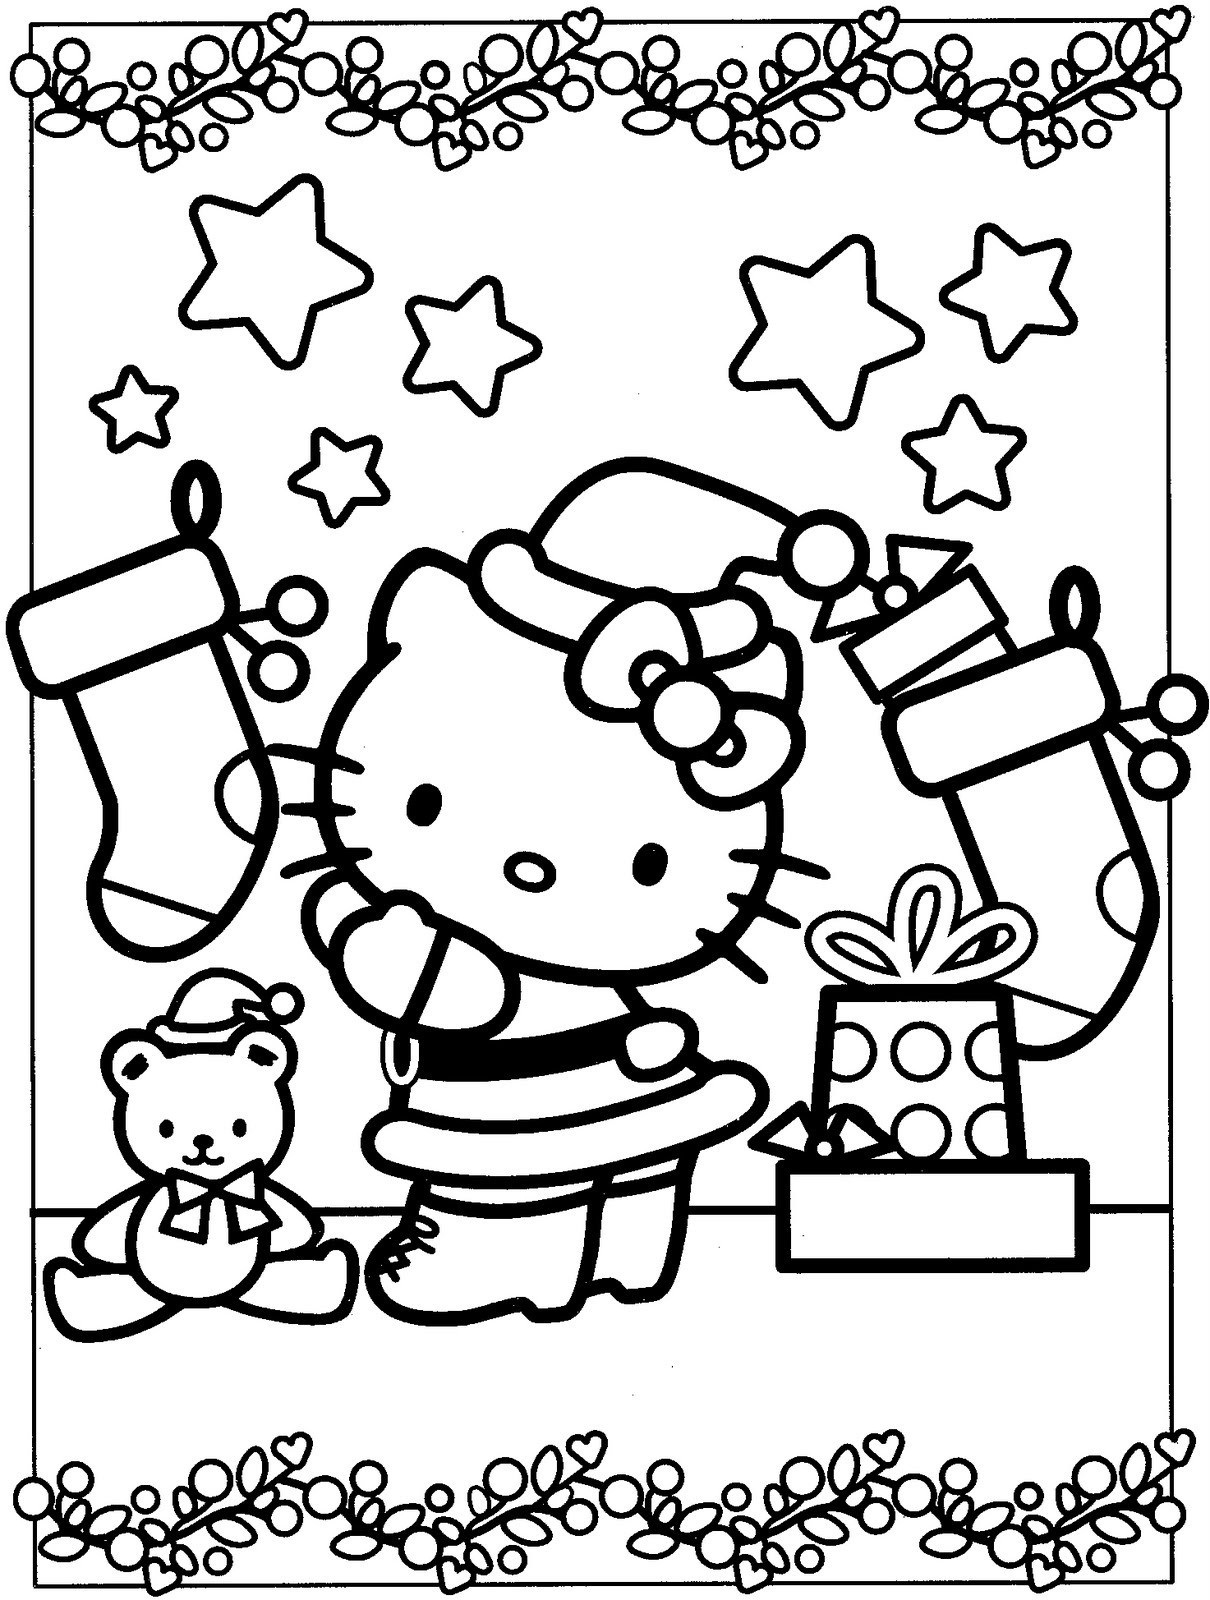 coloring worksheets cute hello kitty christmas coloring pages cute 101 worksheets cute worksheets coloring